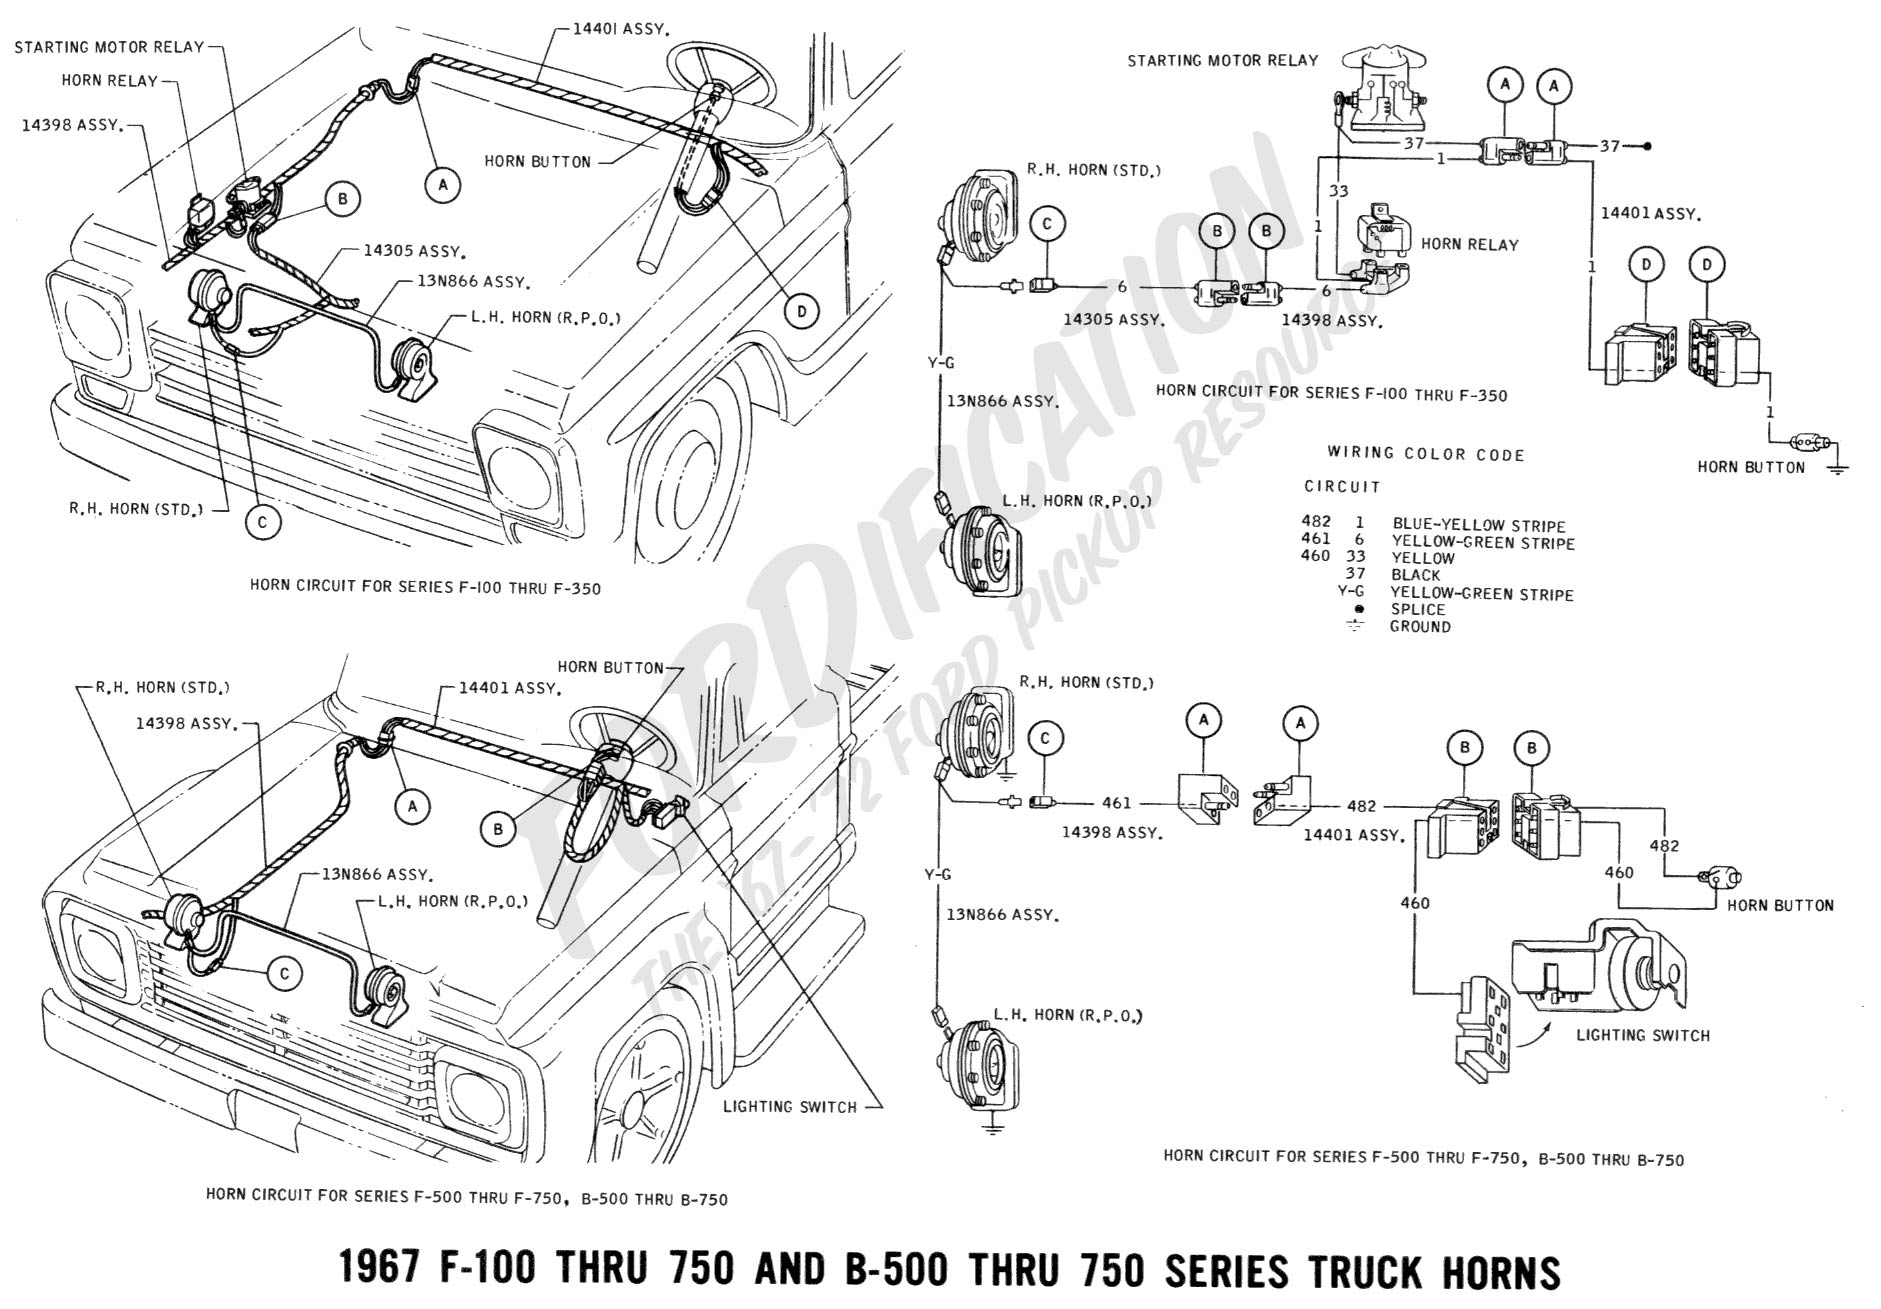 Pickup Truck Wiring Diagram 1974 Wire Data Schema 3 Single Coil Diagrams 1975 Ford F 250 390 Schematic Exclusive Circuit Rh Internationalsportsoutlet Co Two Guitar Basic Electric